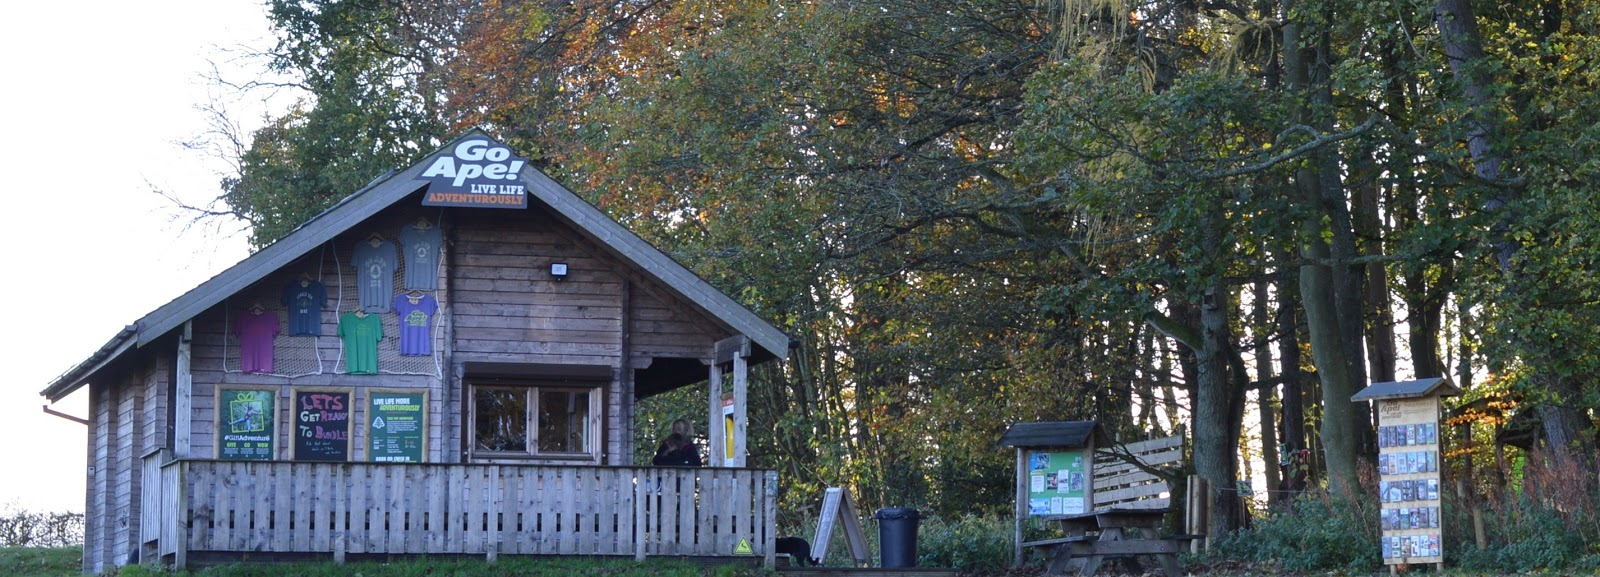 10 Reasons to Stay at Matfen Hall in Northumberland with Kids  - Go Ape! entrance